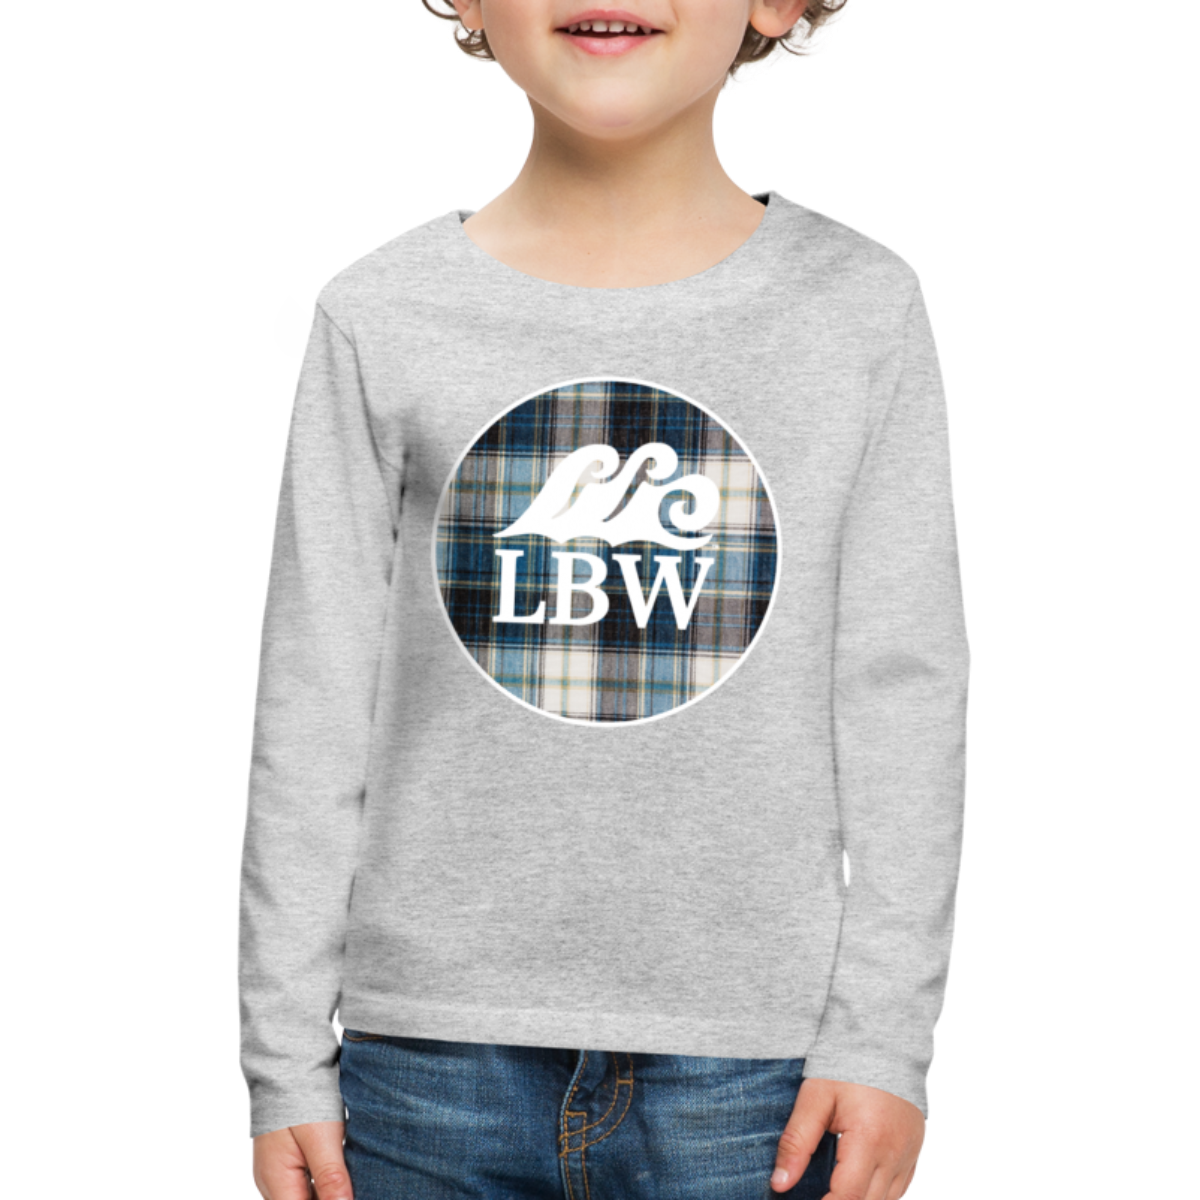 Teal Flannel-Kids' Long Sleeve T